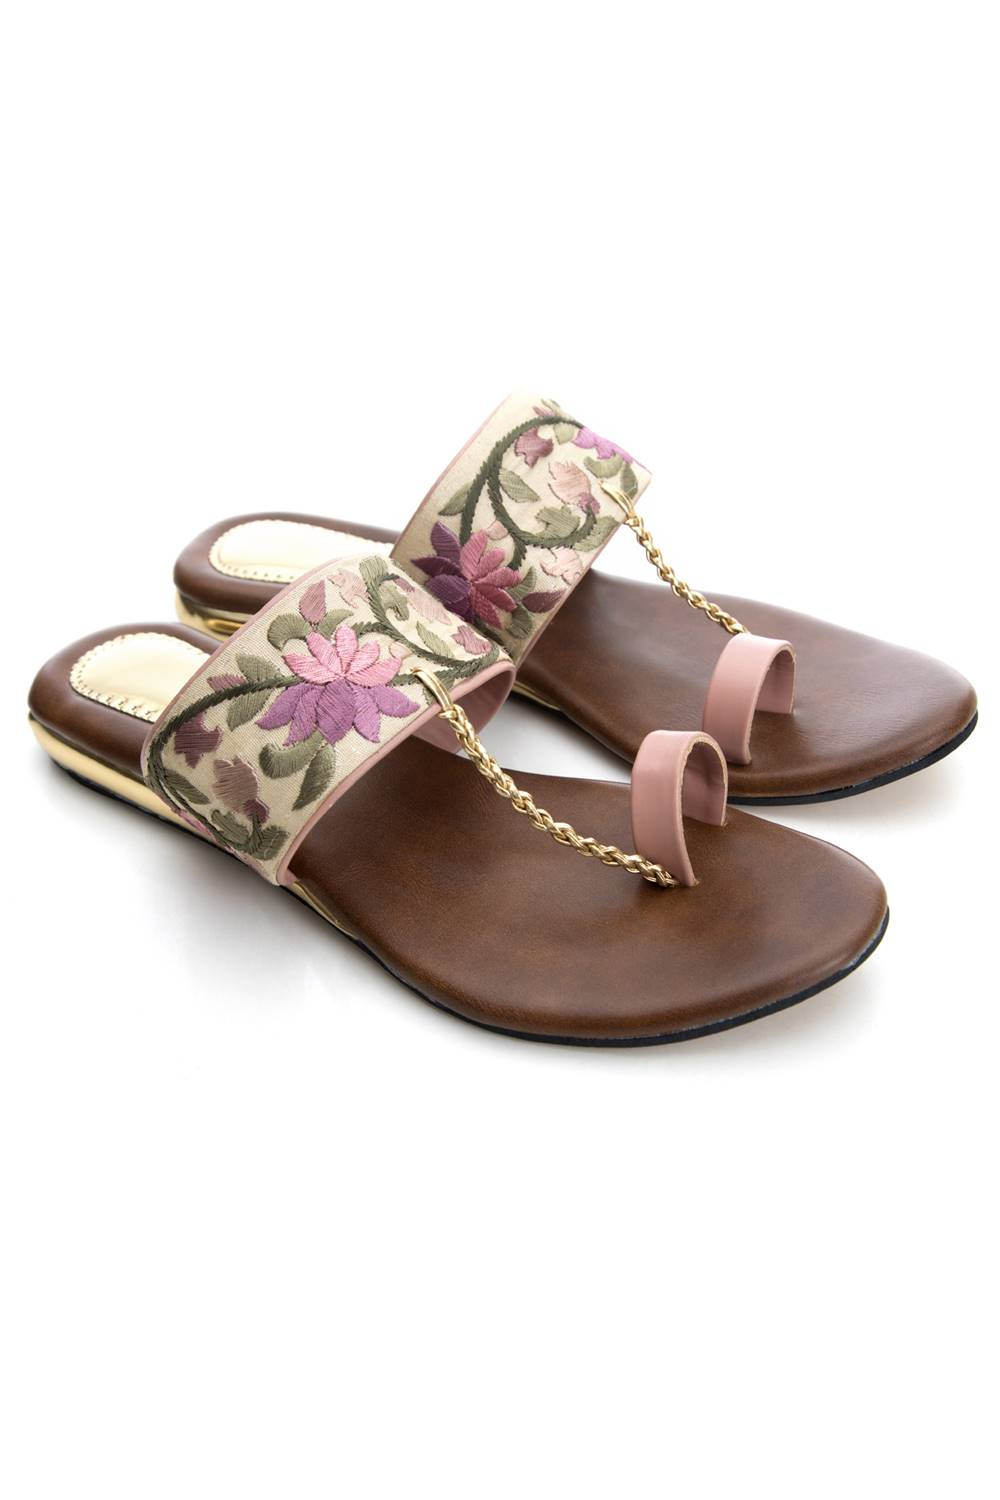 Embroidered sandals2